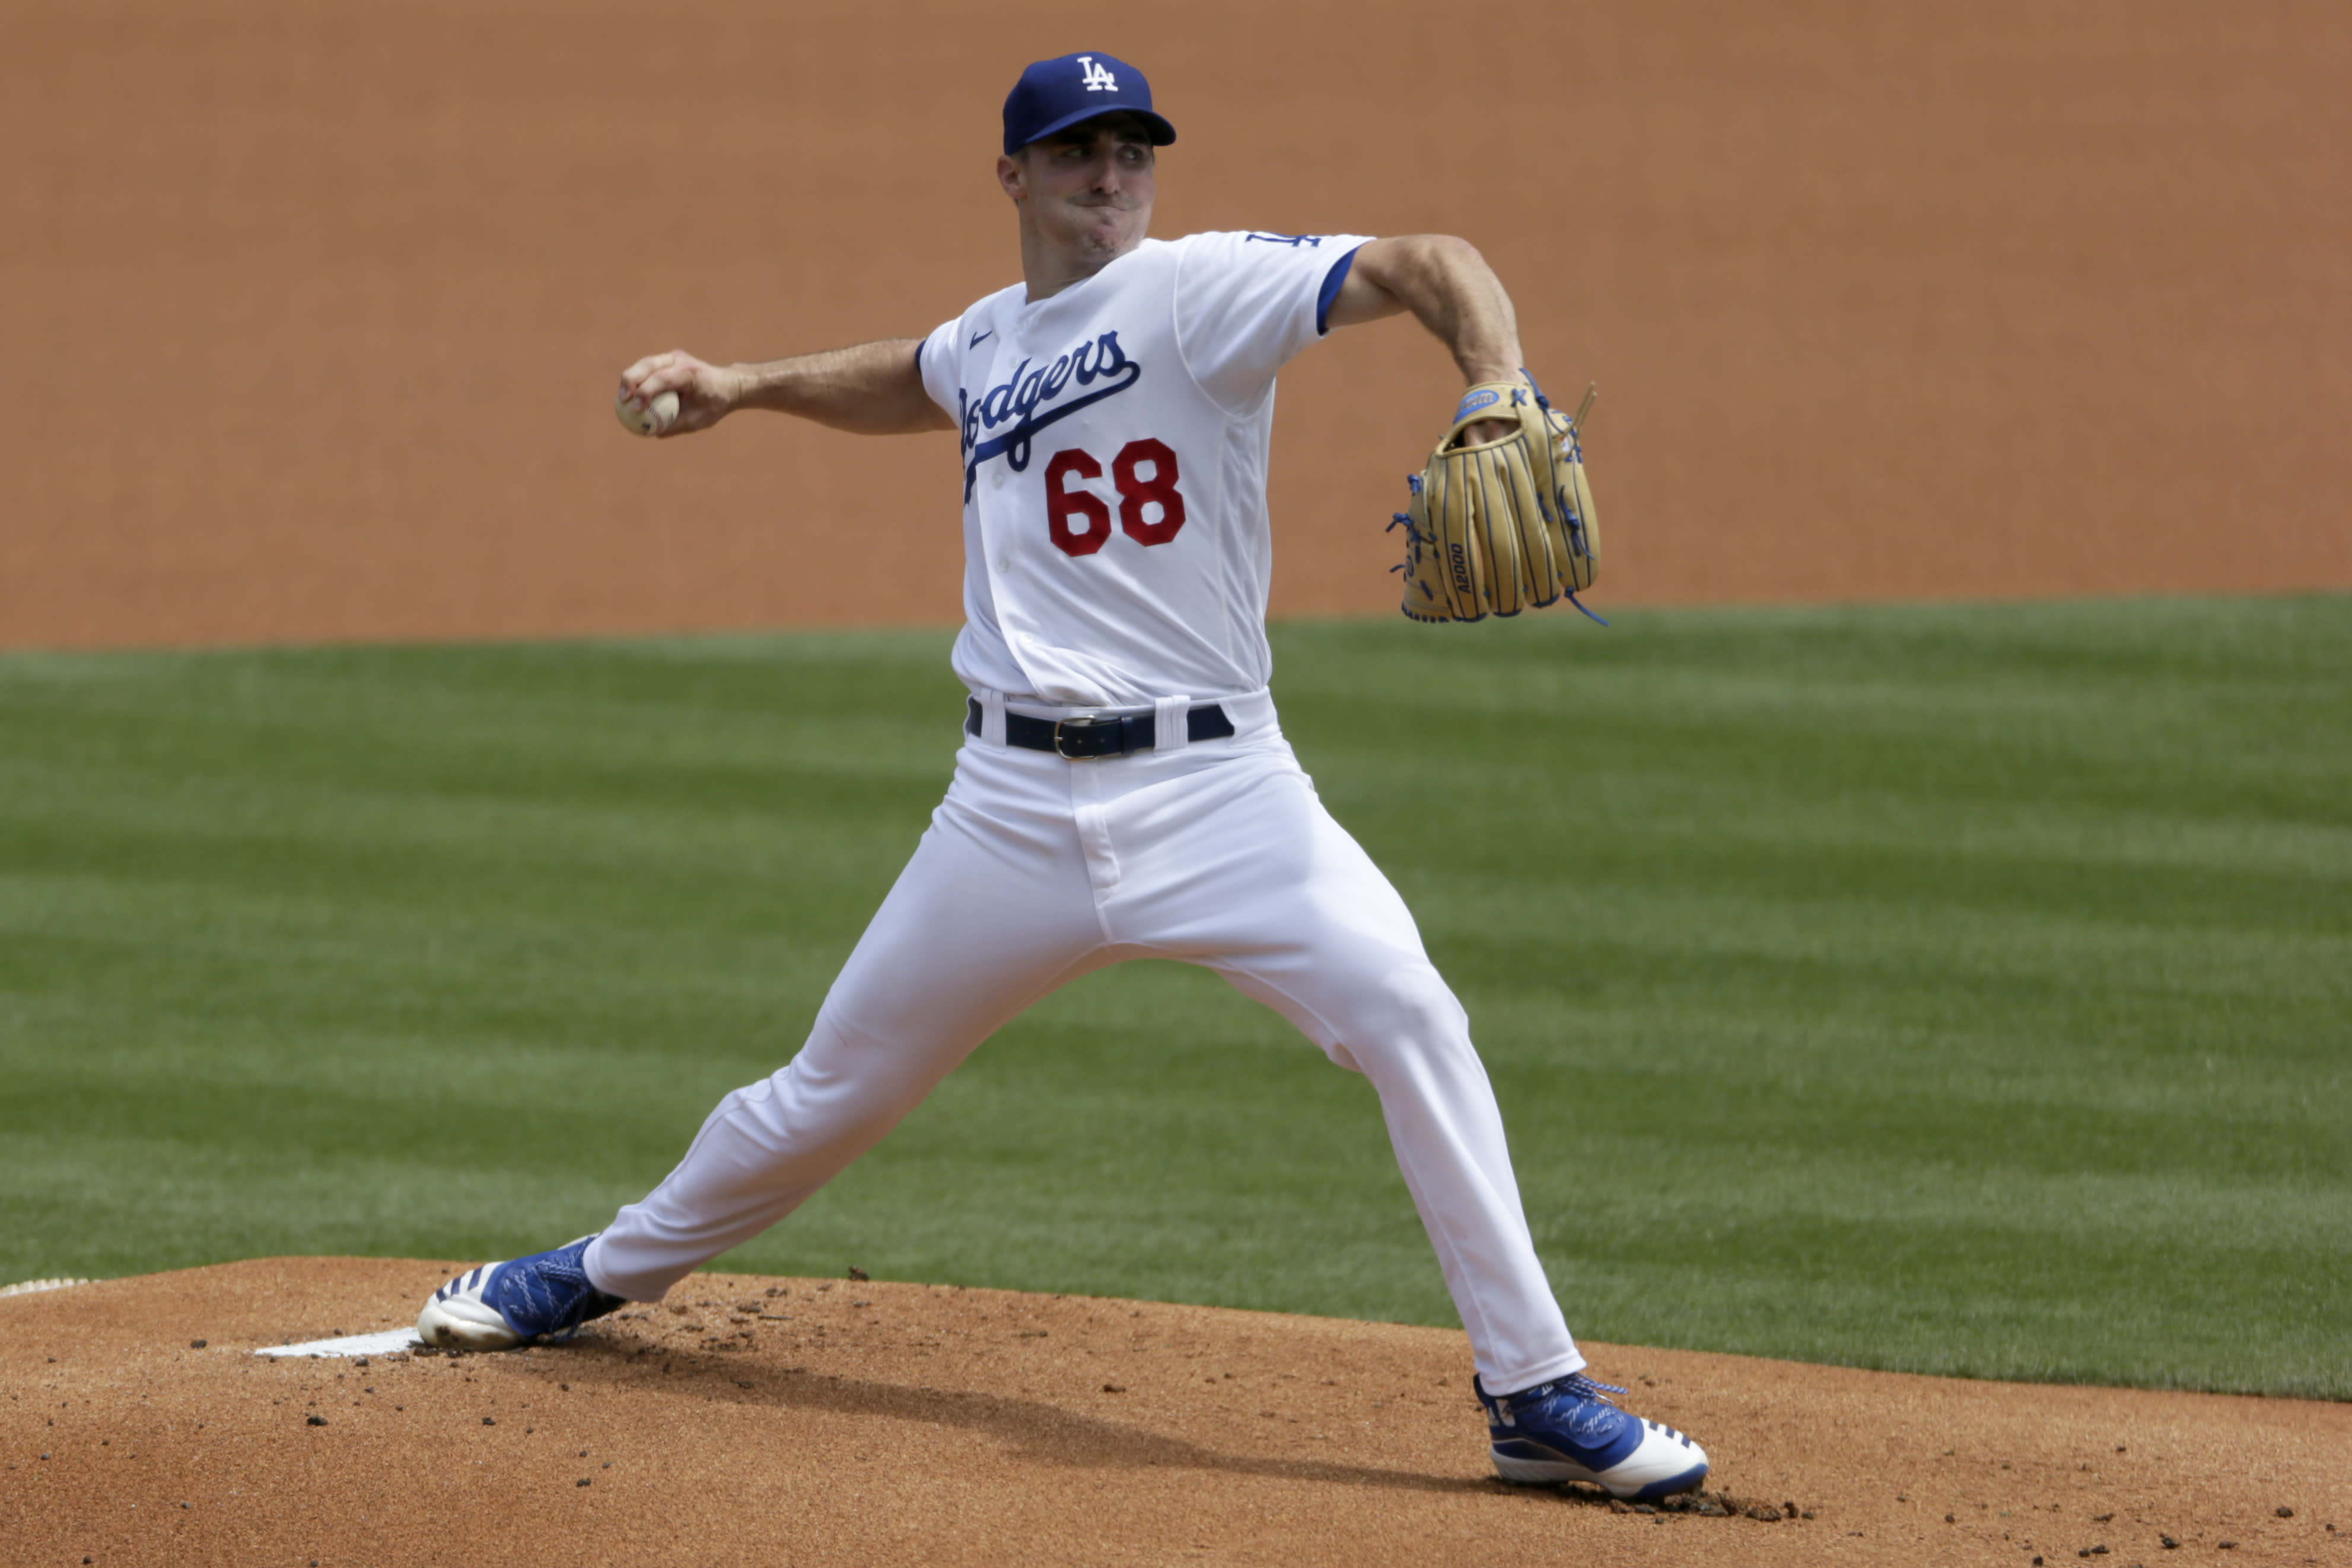 Los Angeles Dodgers starting pitcher Ross Stripling throws to the plate against the Colorado Rockies during the first inning of a baseball game in Los Angeles, Sunday, Aug. 23, 2020. (AP Photo/Alex Gallardo)